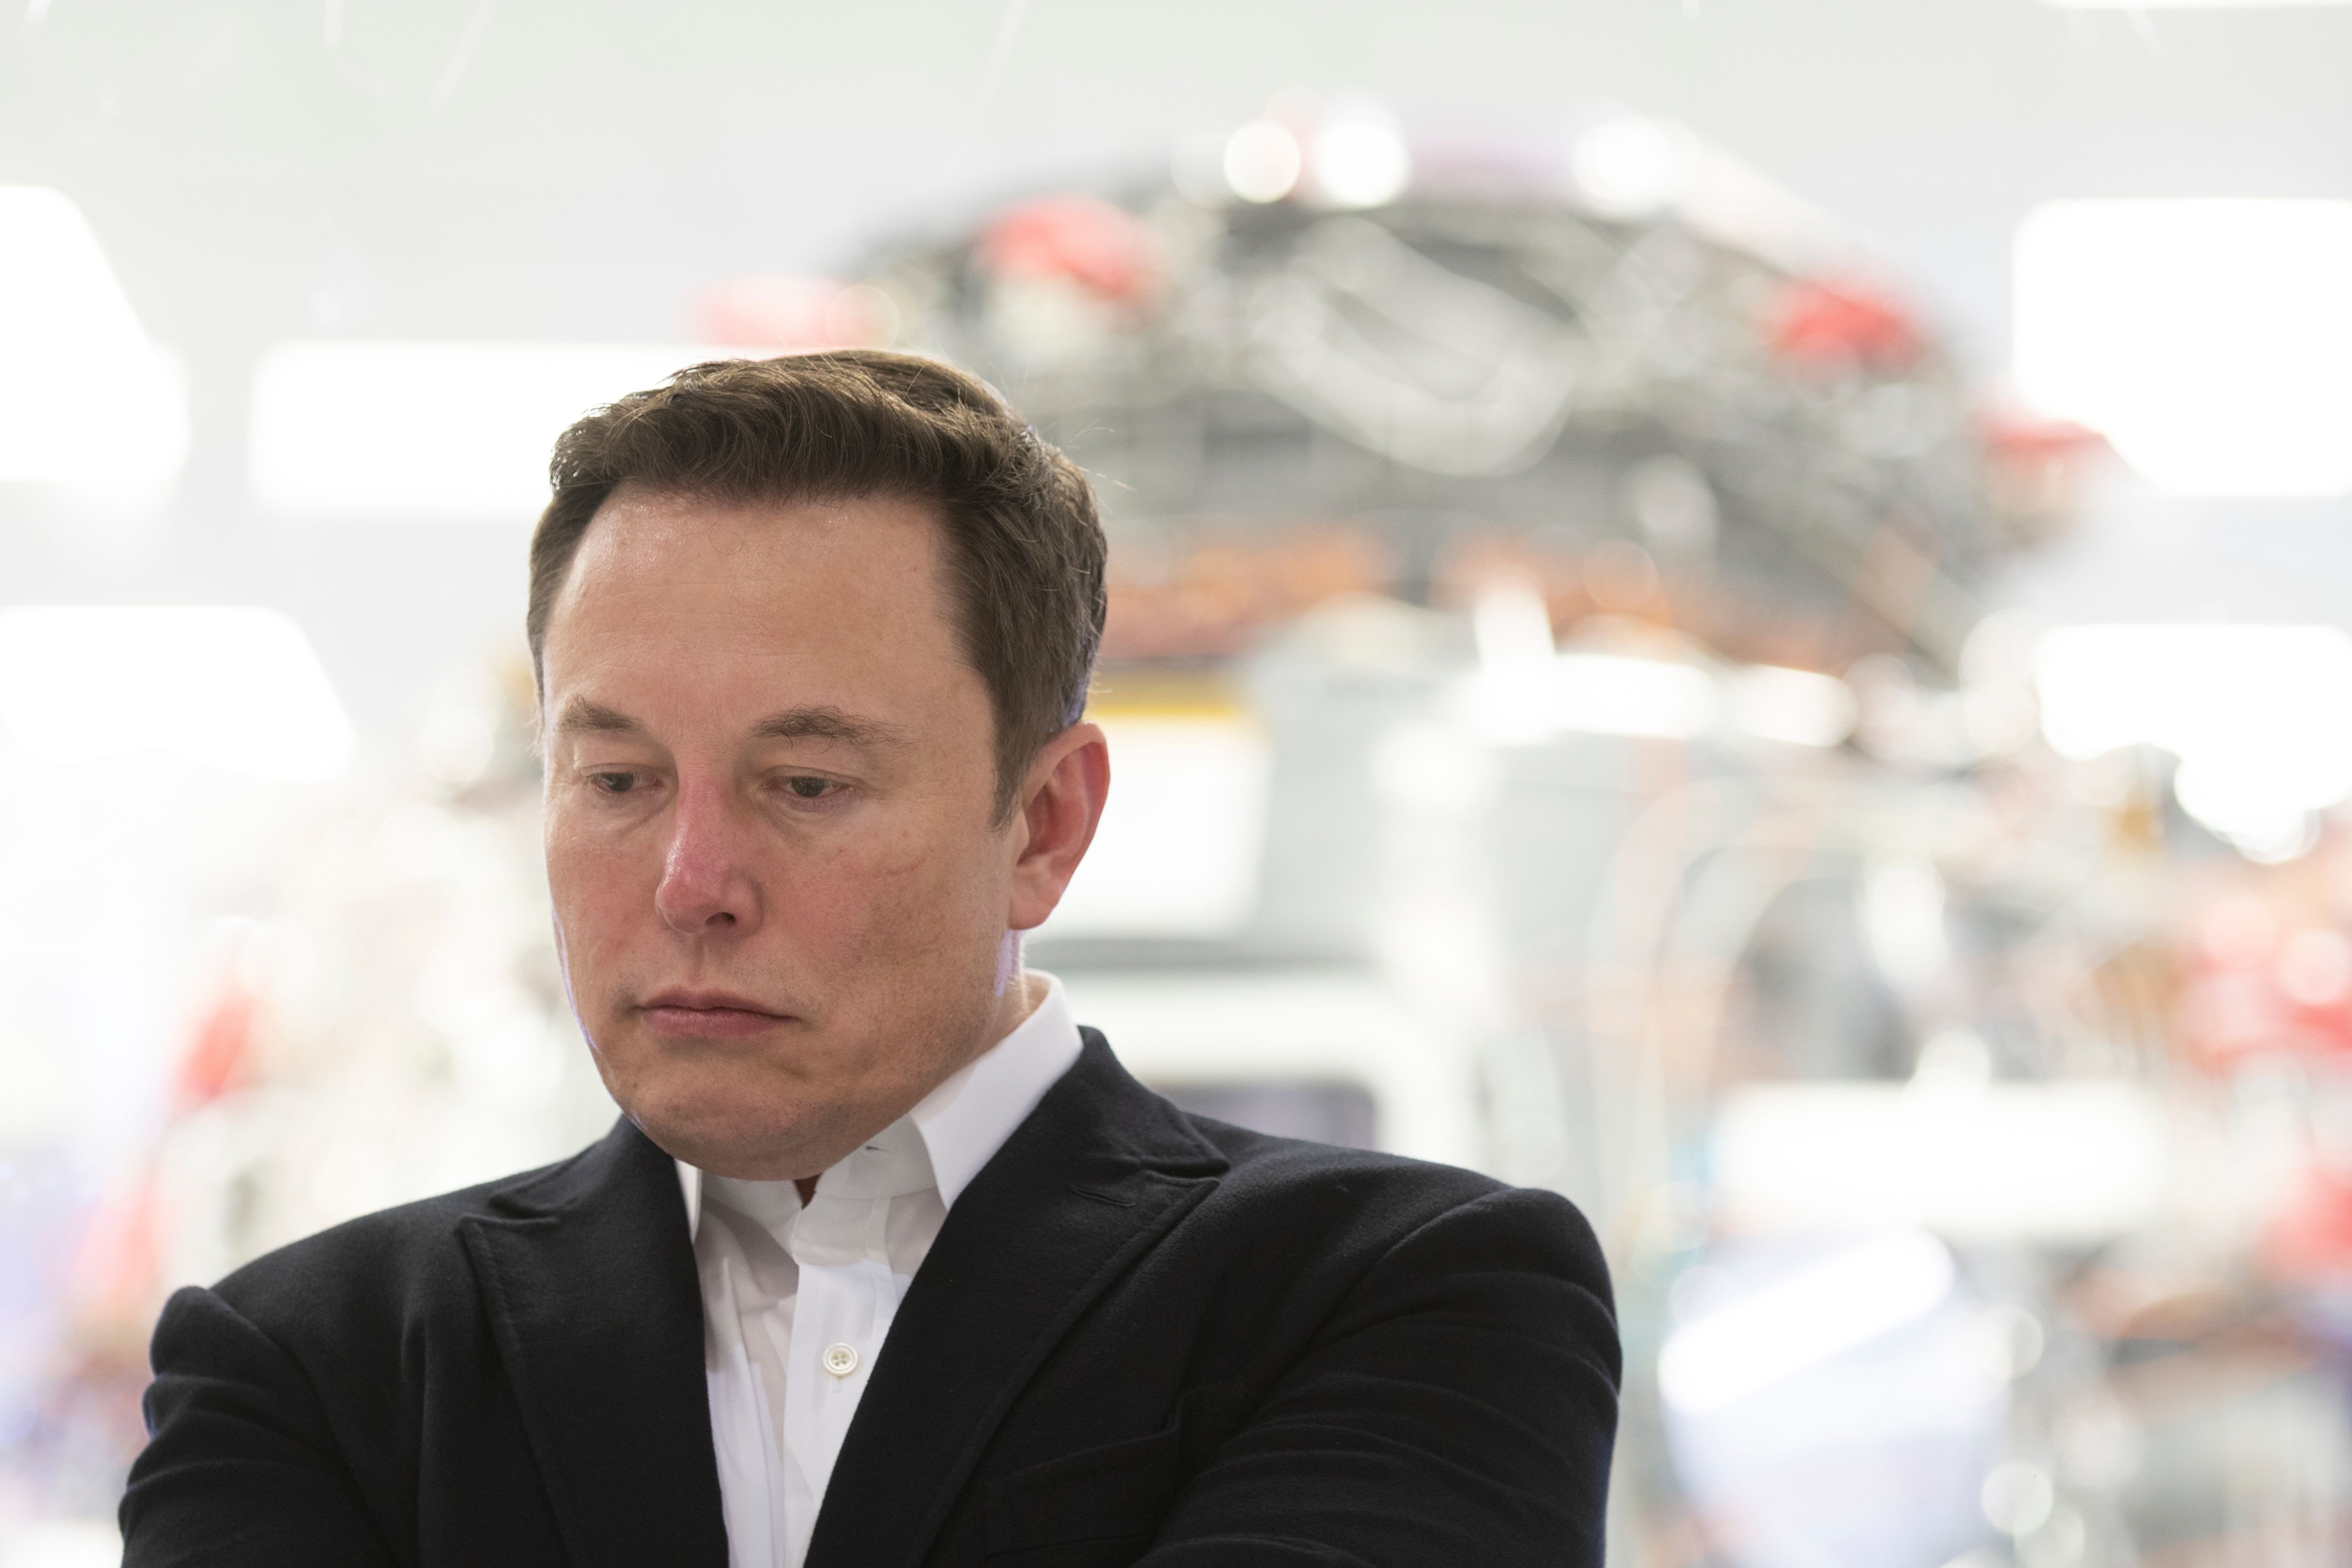 SpaceX Chief Engineer Elon Musk speaking in front of Crew Dragon at SpaceX Headquarters in Hawthorne, California | Photo: Yichuan Cao/NurPhoto via Getty Images